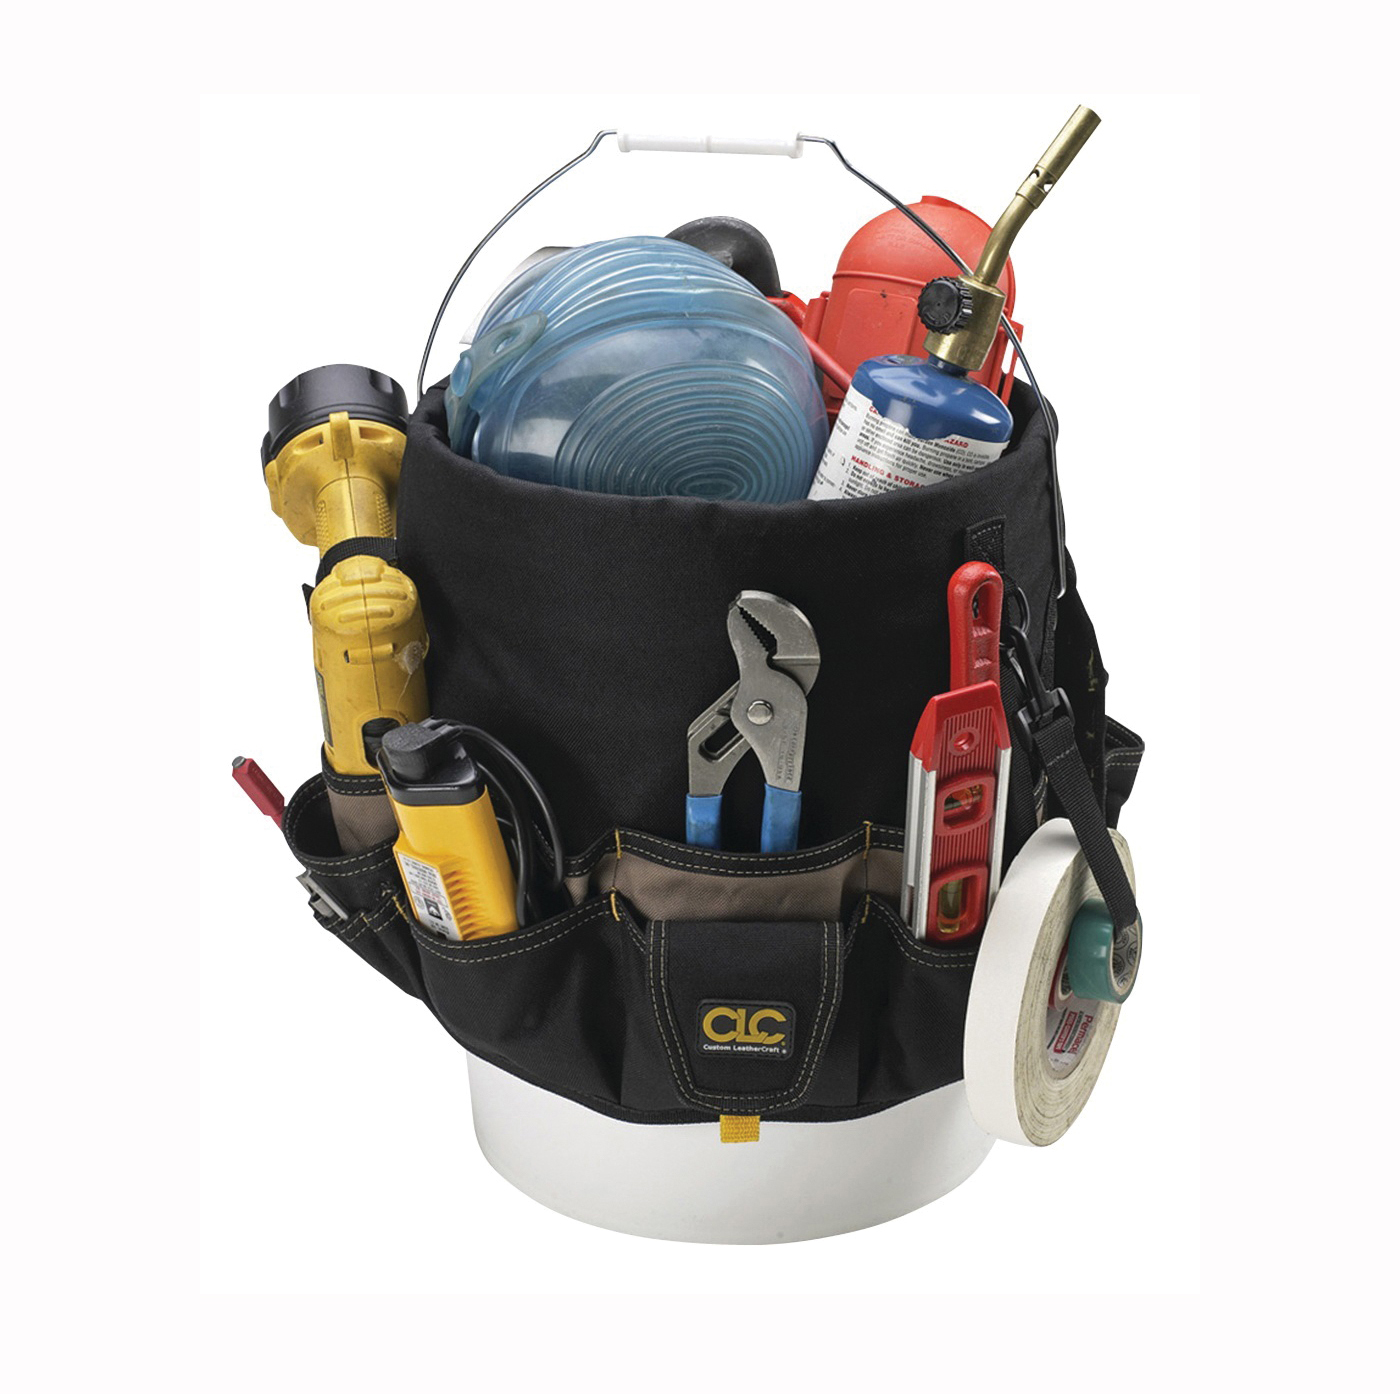 Picture of CLC Tool Works 1119 Bucket Tool Organizer, 48 -Compartment, Polyester, Black/Khaki